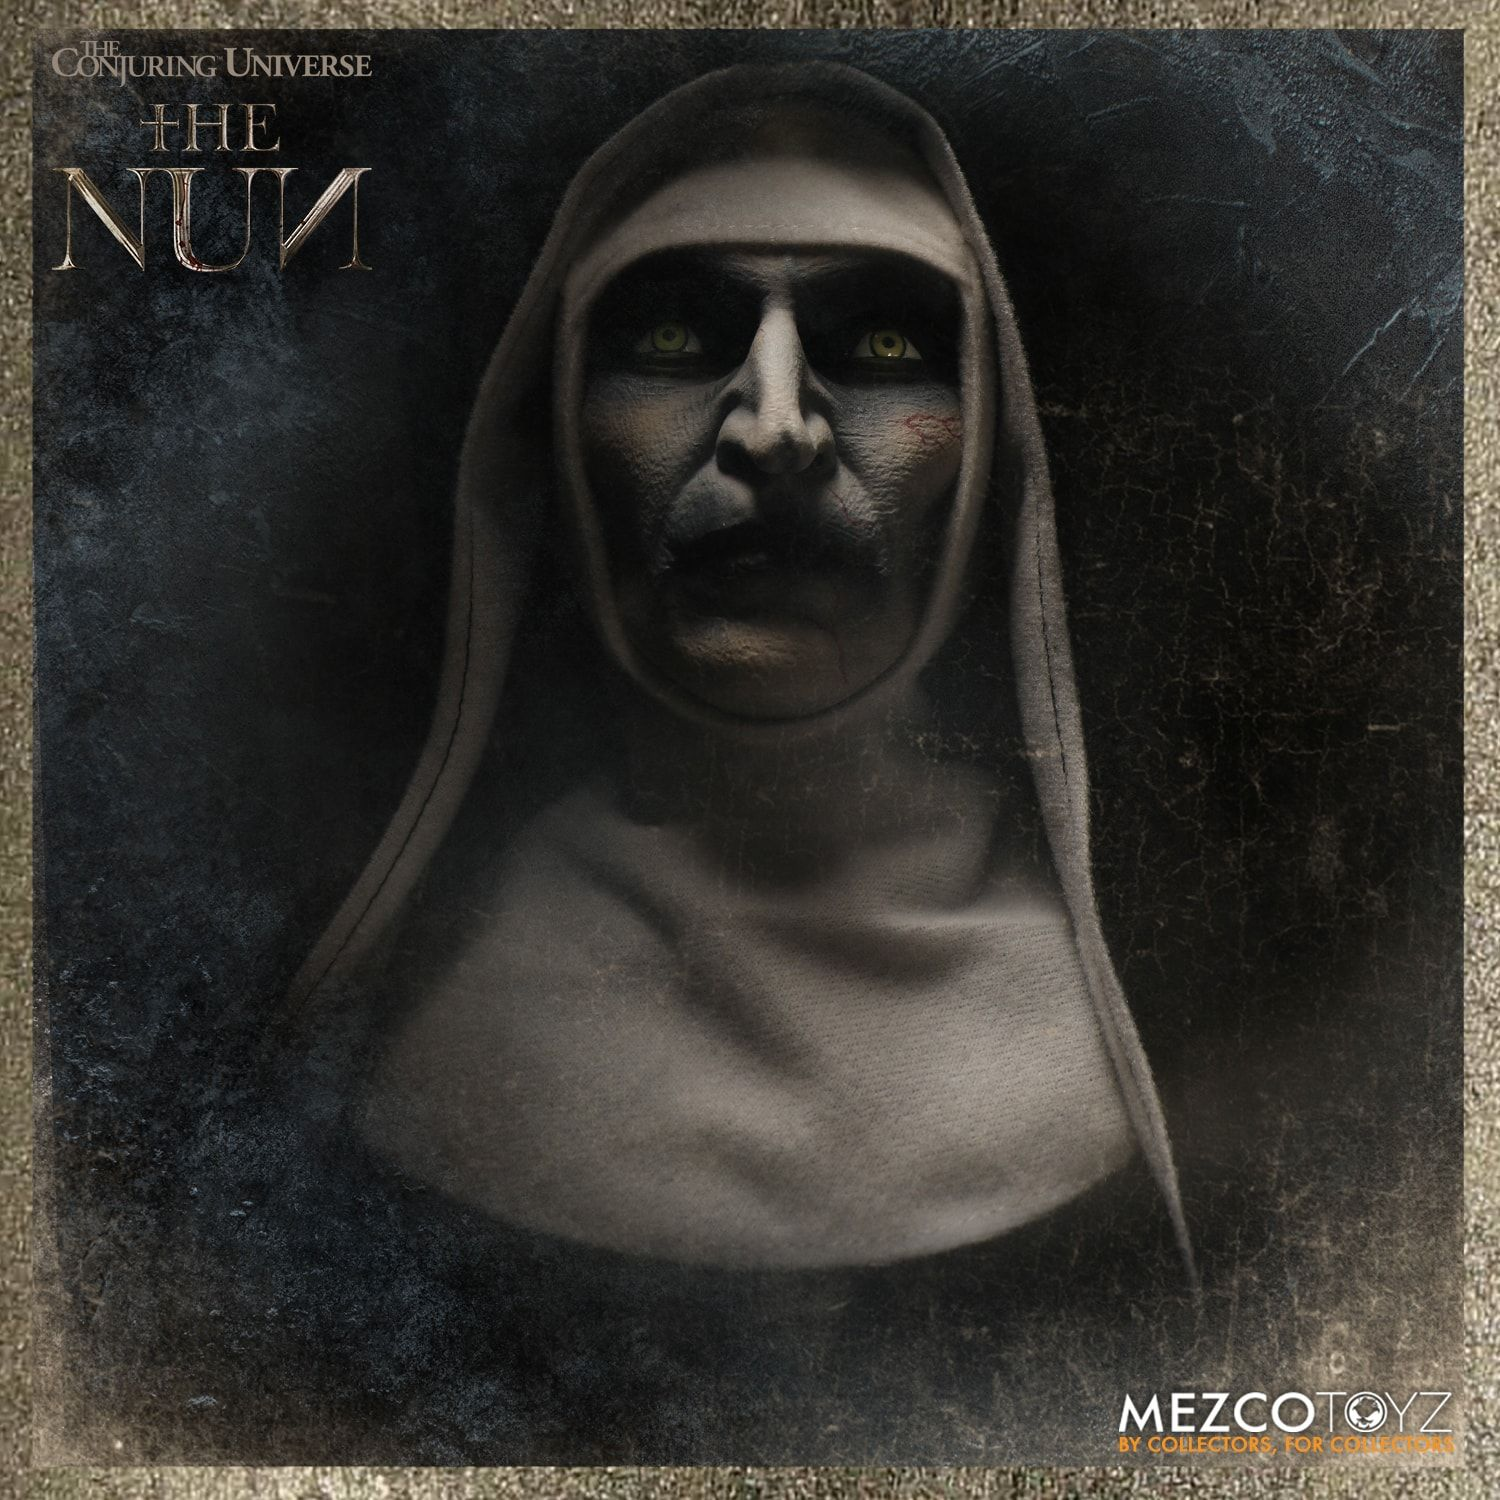 The Nun 4 - Mezco's THE NUN Doll May Be Scarier Than the Movie Itself